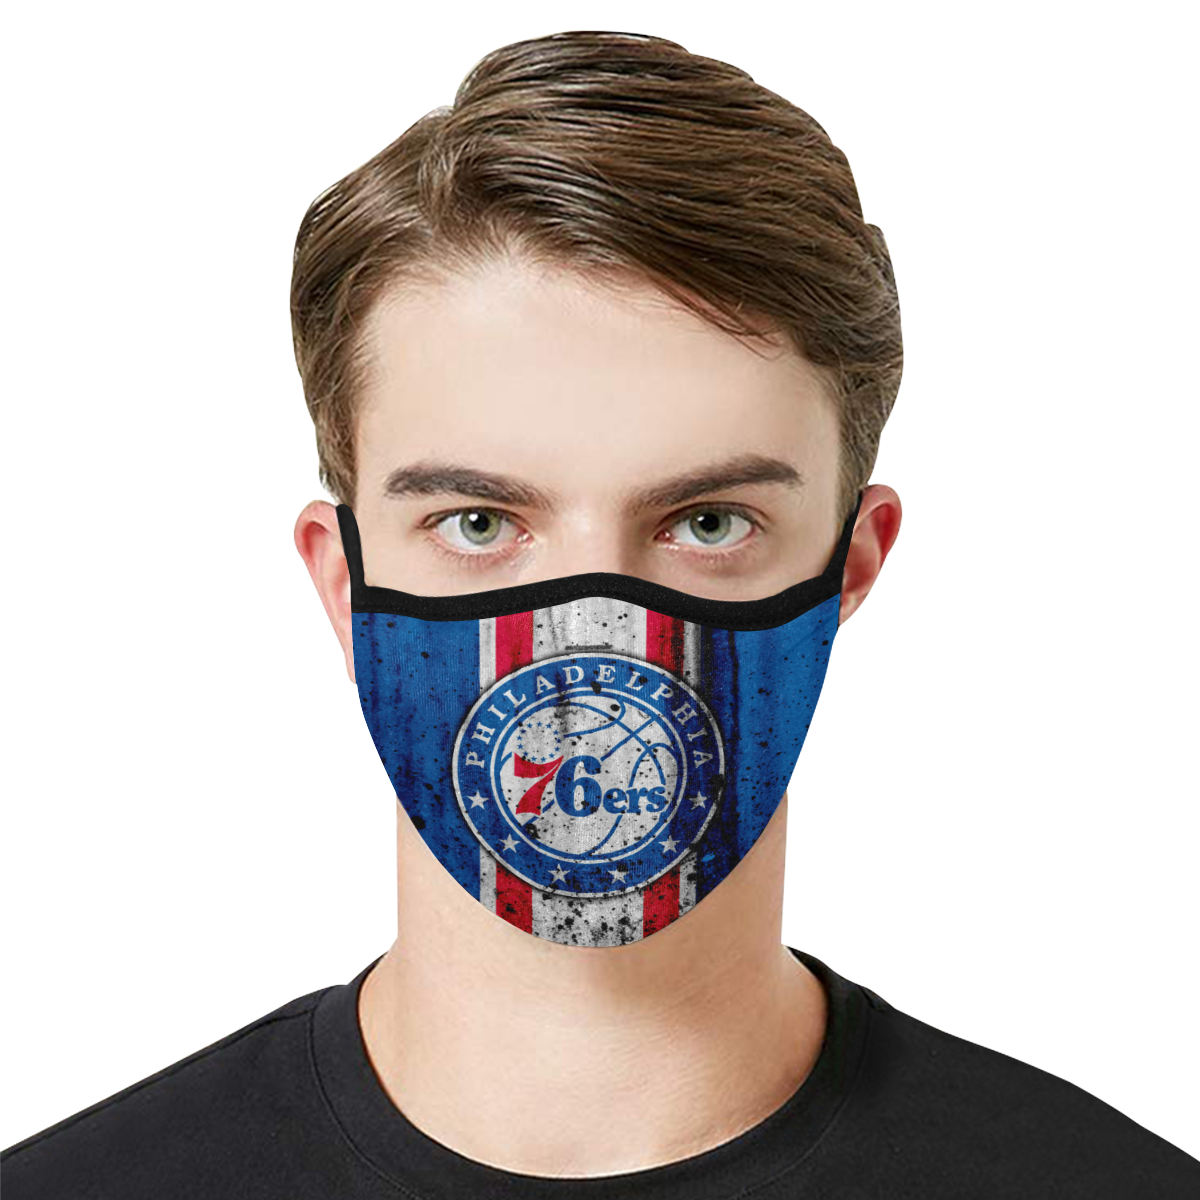 76ers Face Mask